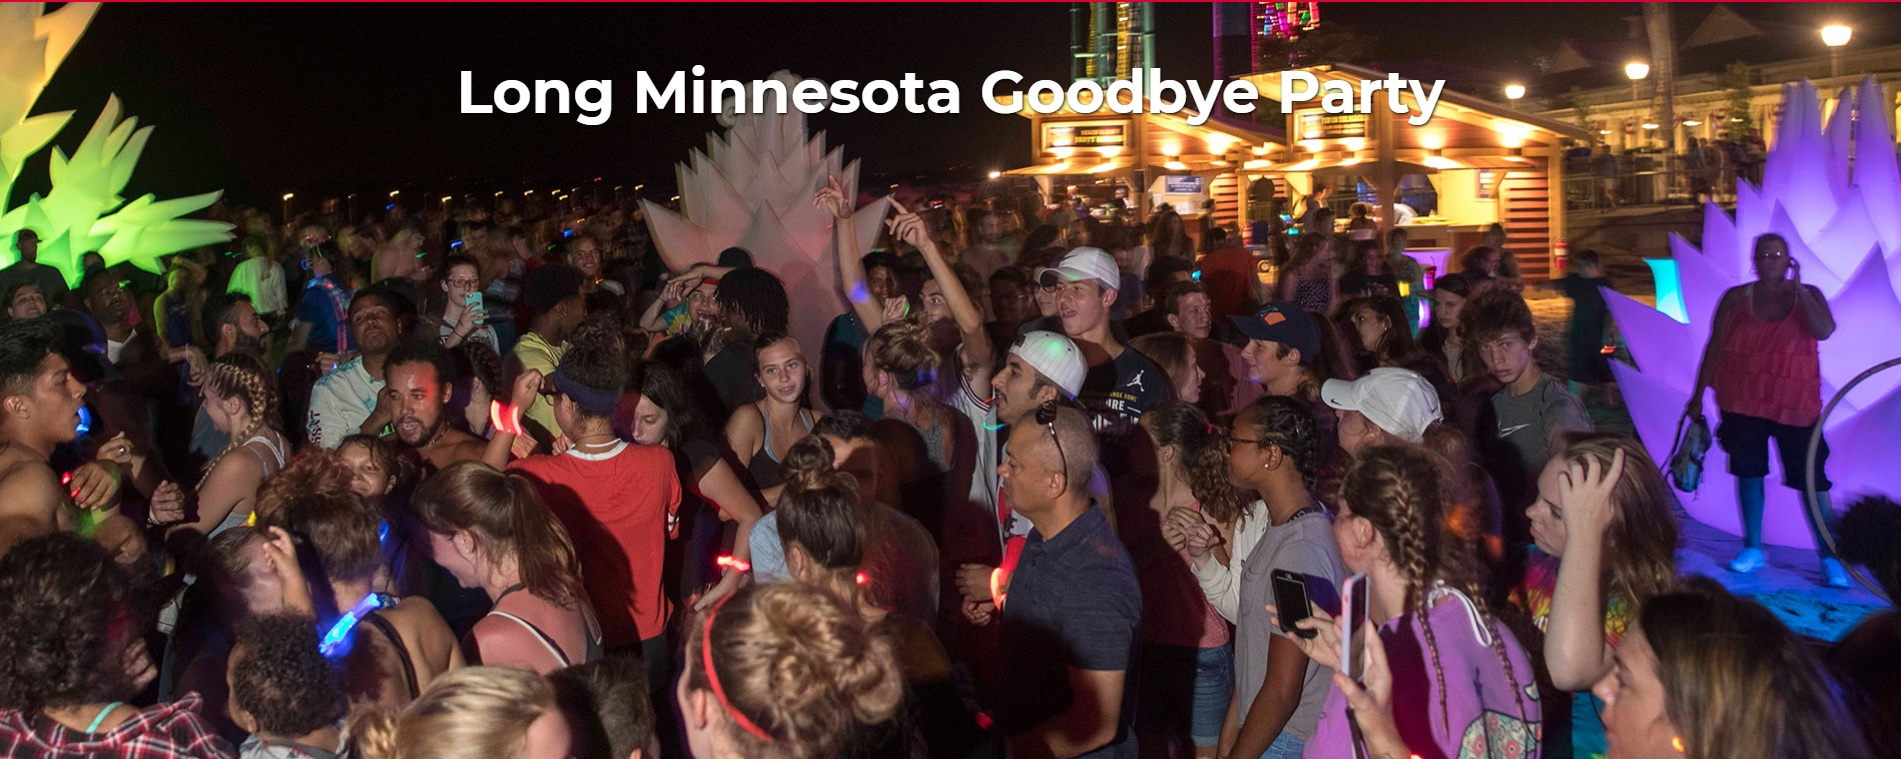 Long Minnesota Goodbye Party